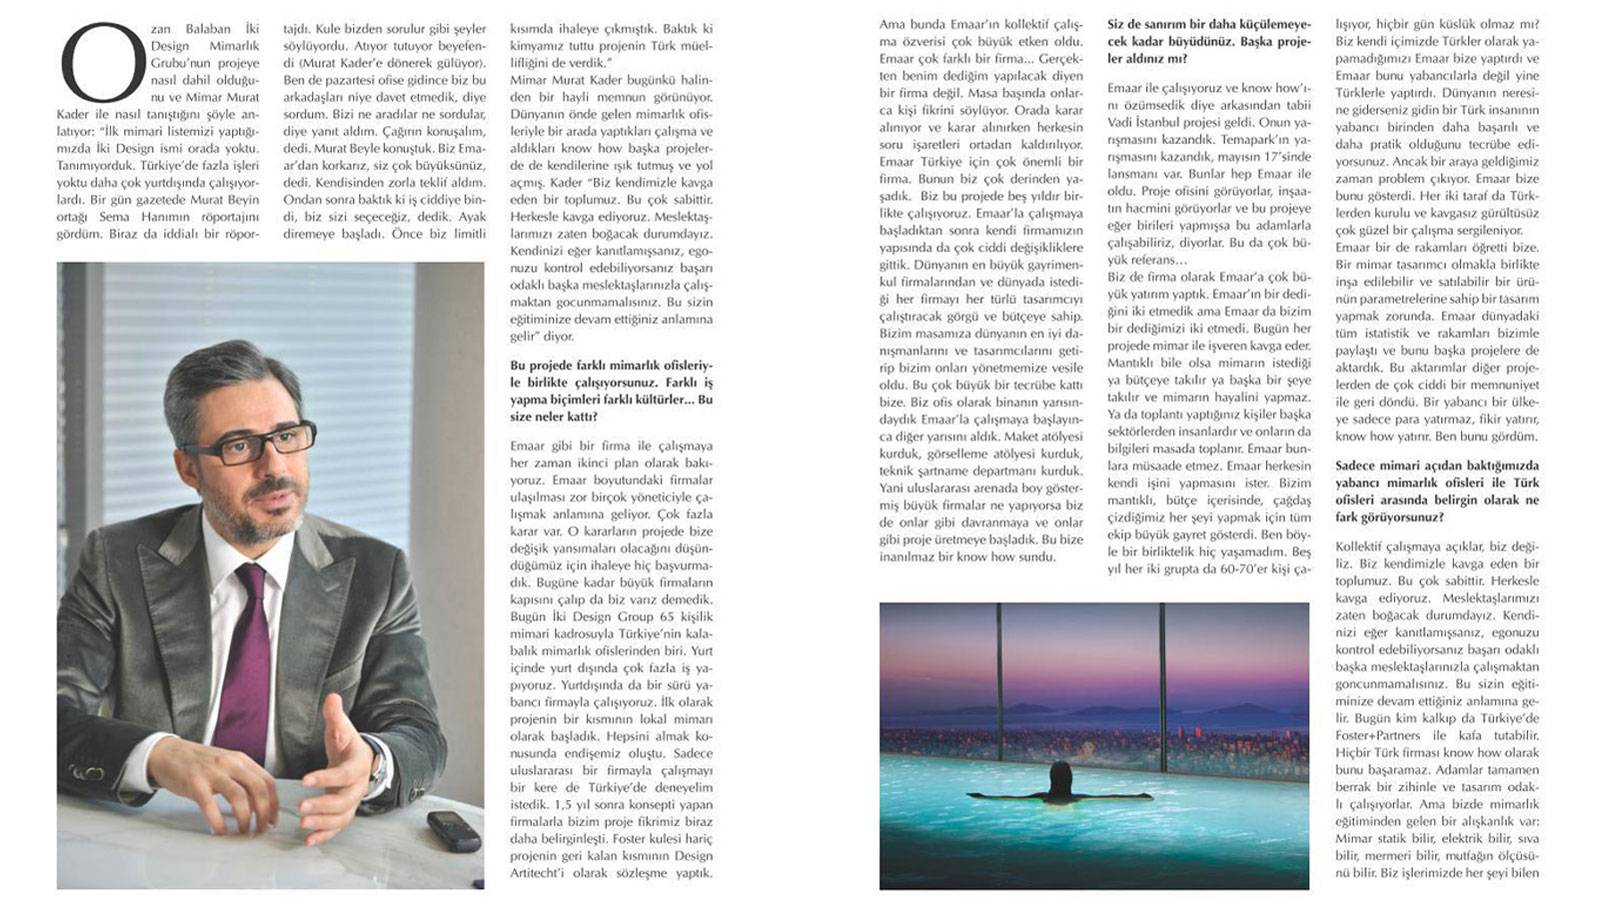 01.04.2013 - Murat Kader has delivered an interview in monthly magazine İnşaat Malzeme